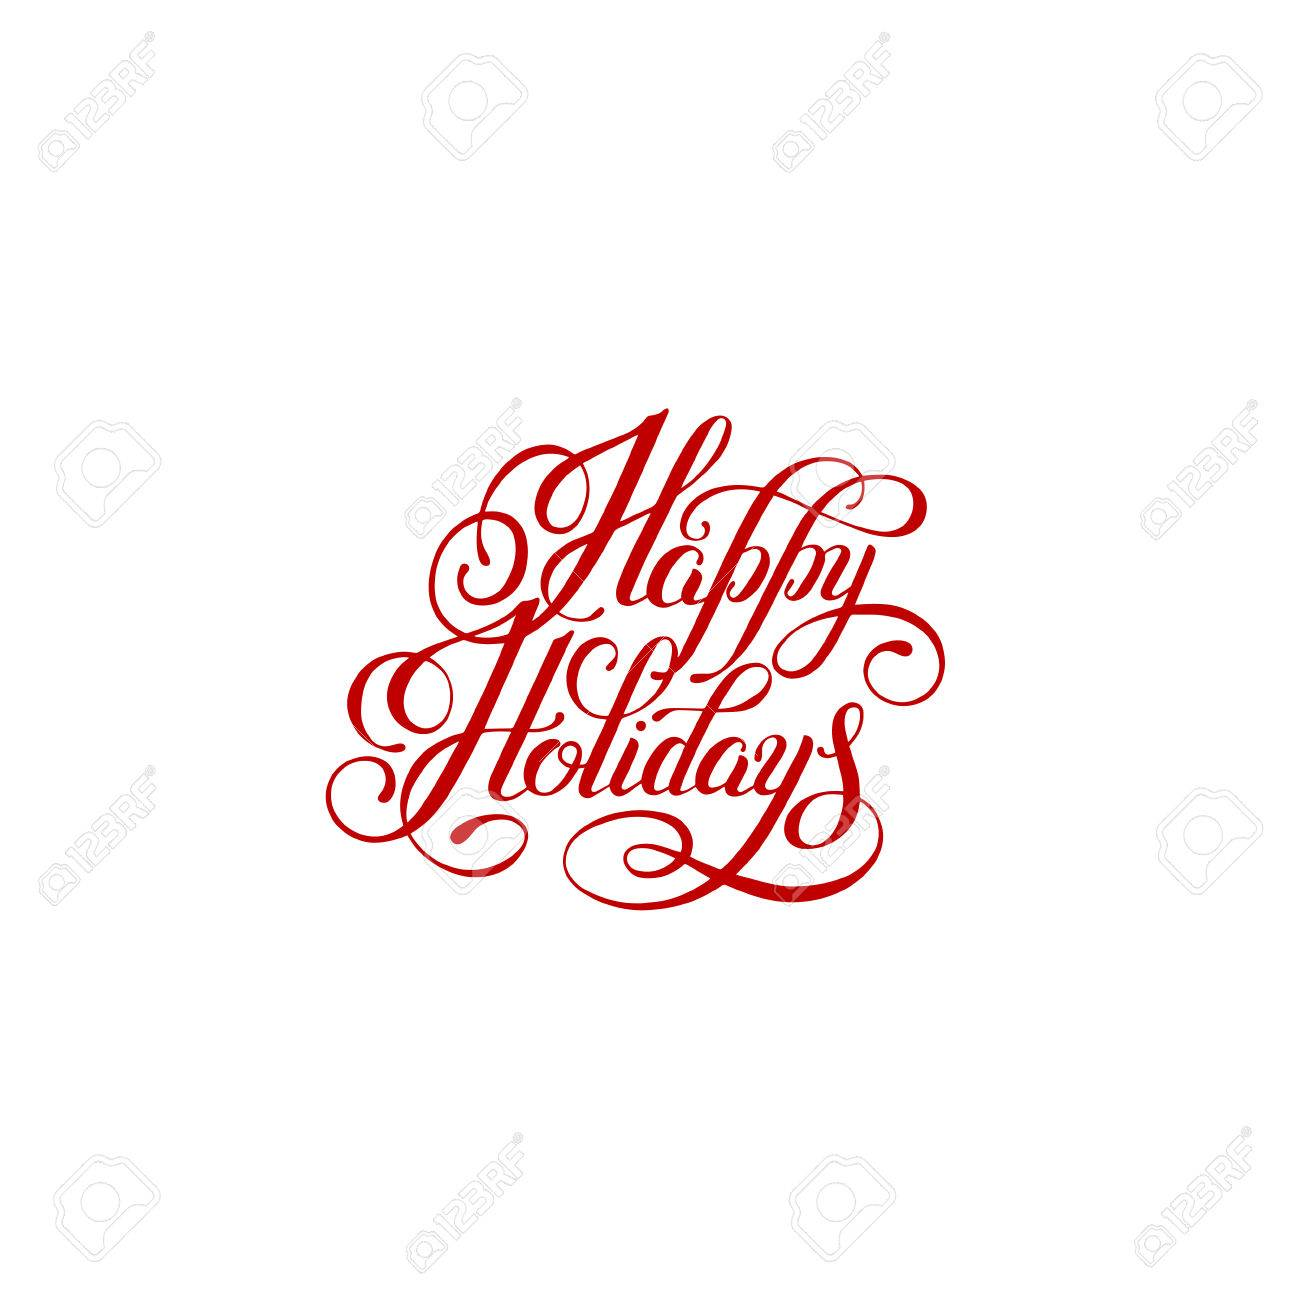 happy holidays handwritten lettering text inscription holiday rh 123rf com happy holidays card vector happy holidays calligraphy vector